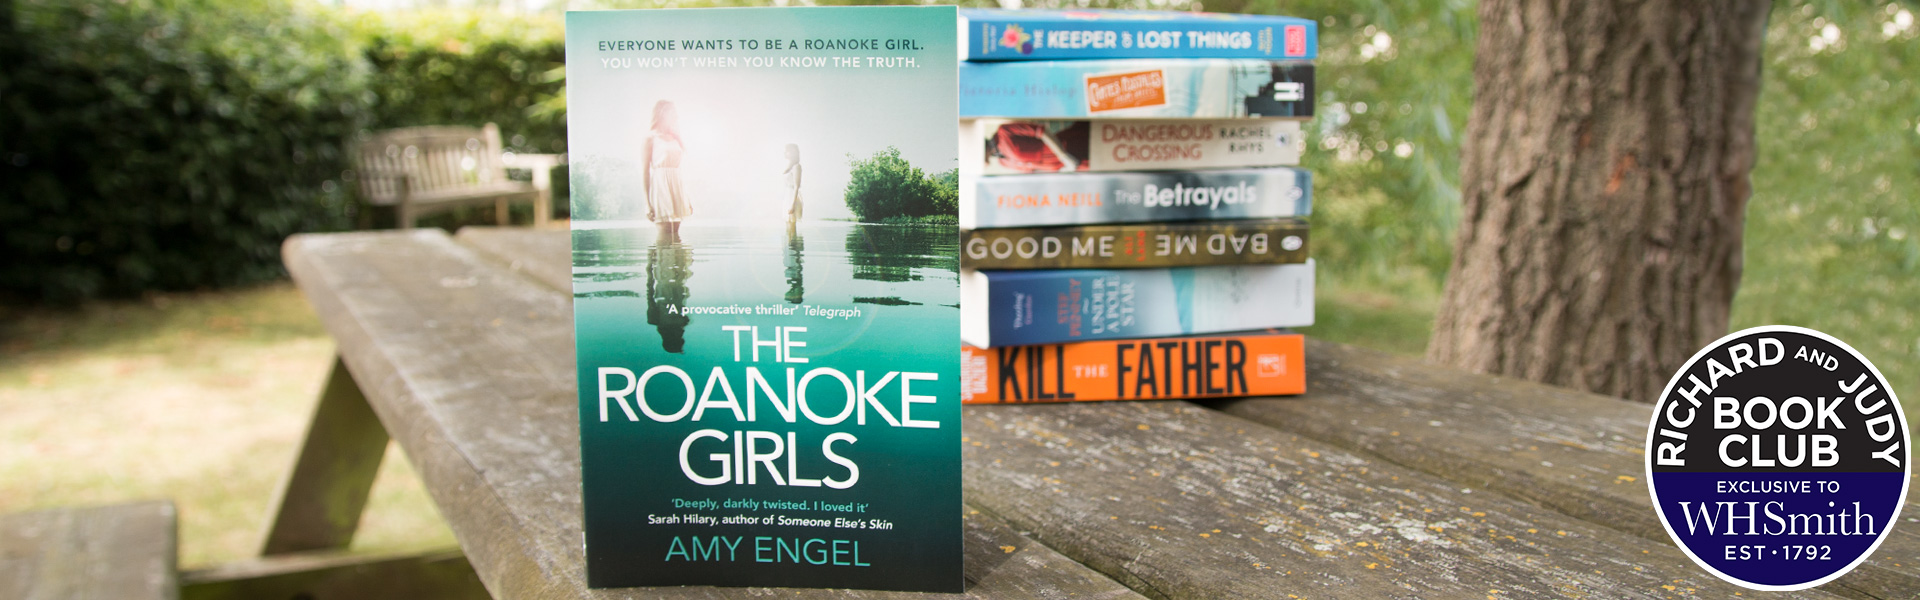 Richard and Judy Introduce The Roanoke Girls by Amy Engel